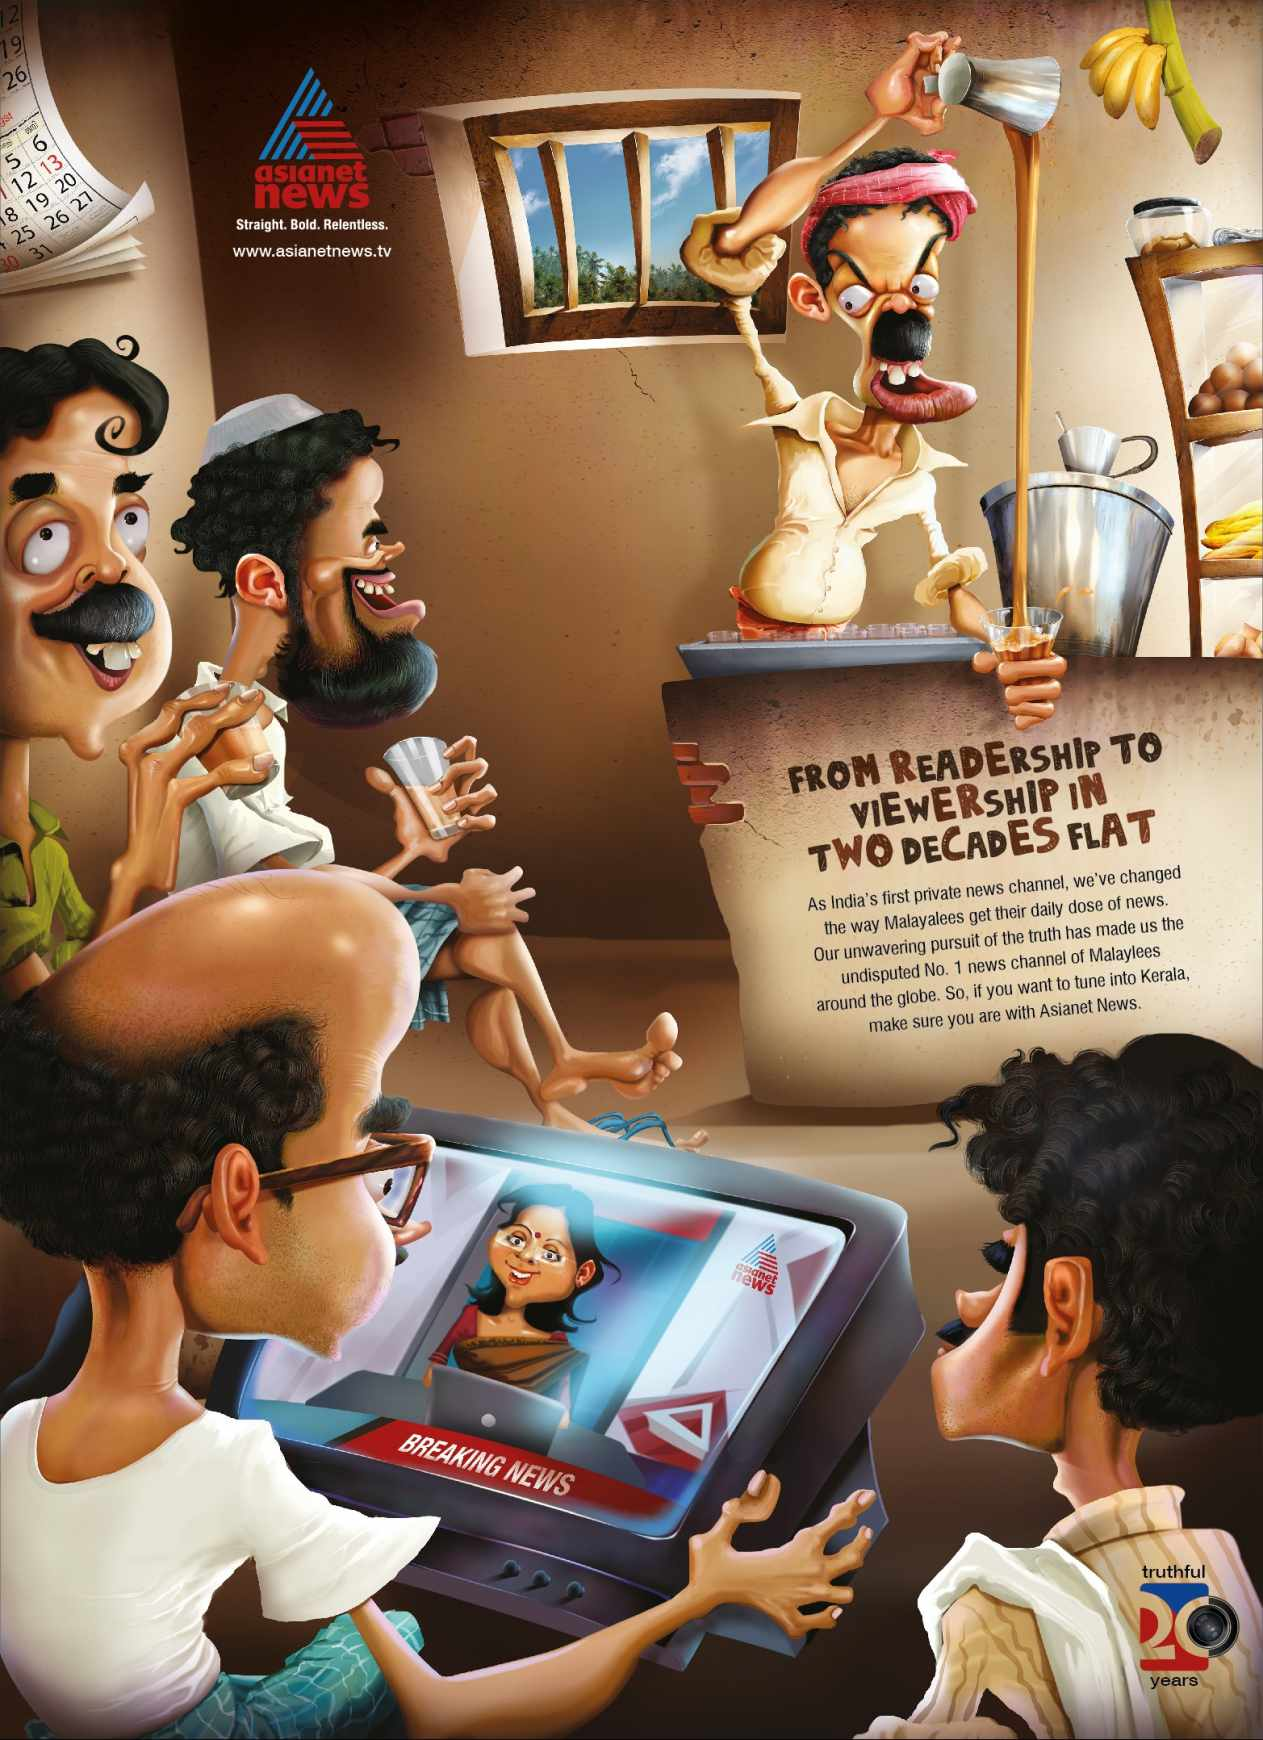 asianet_20_years_campaign_1_aotw